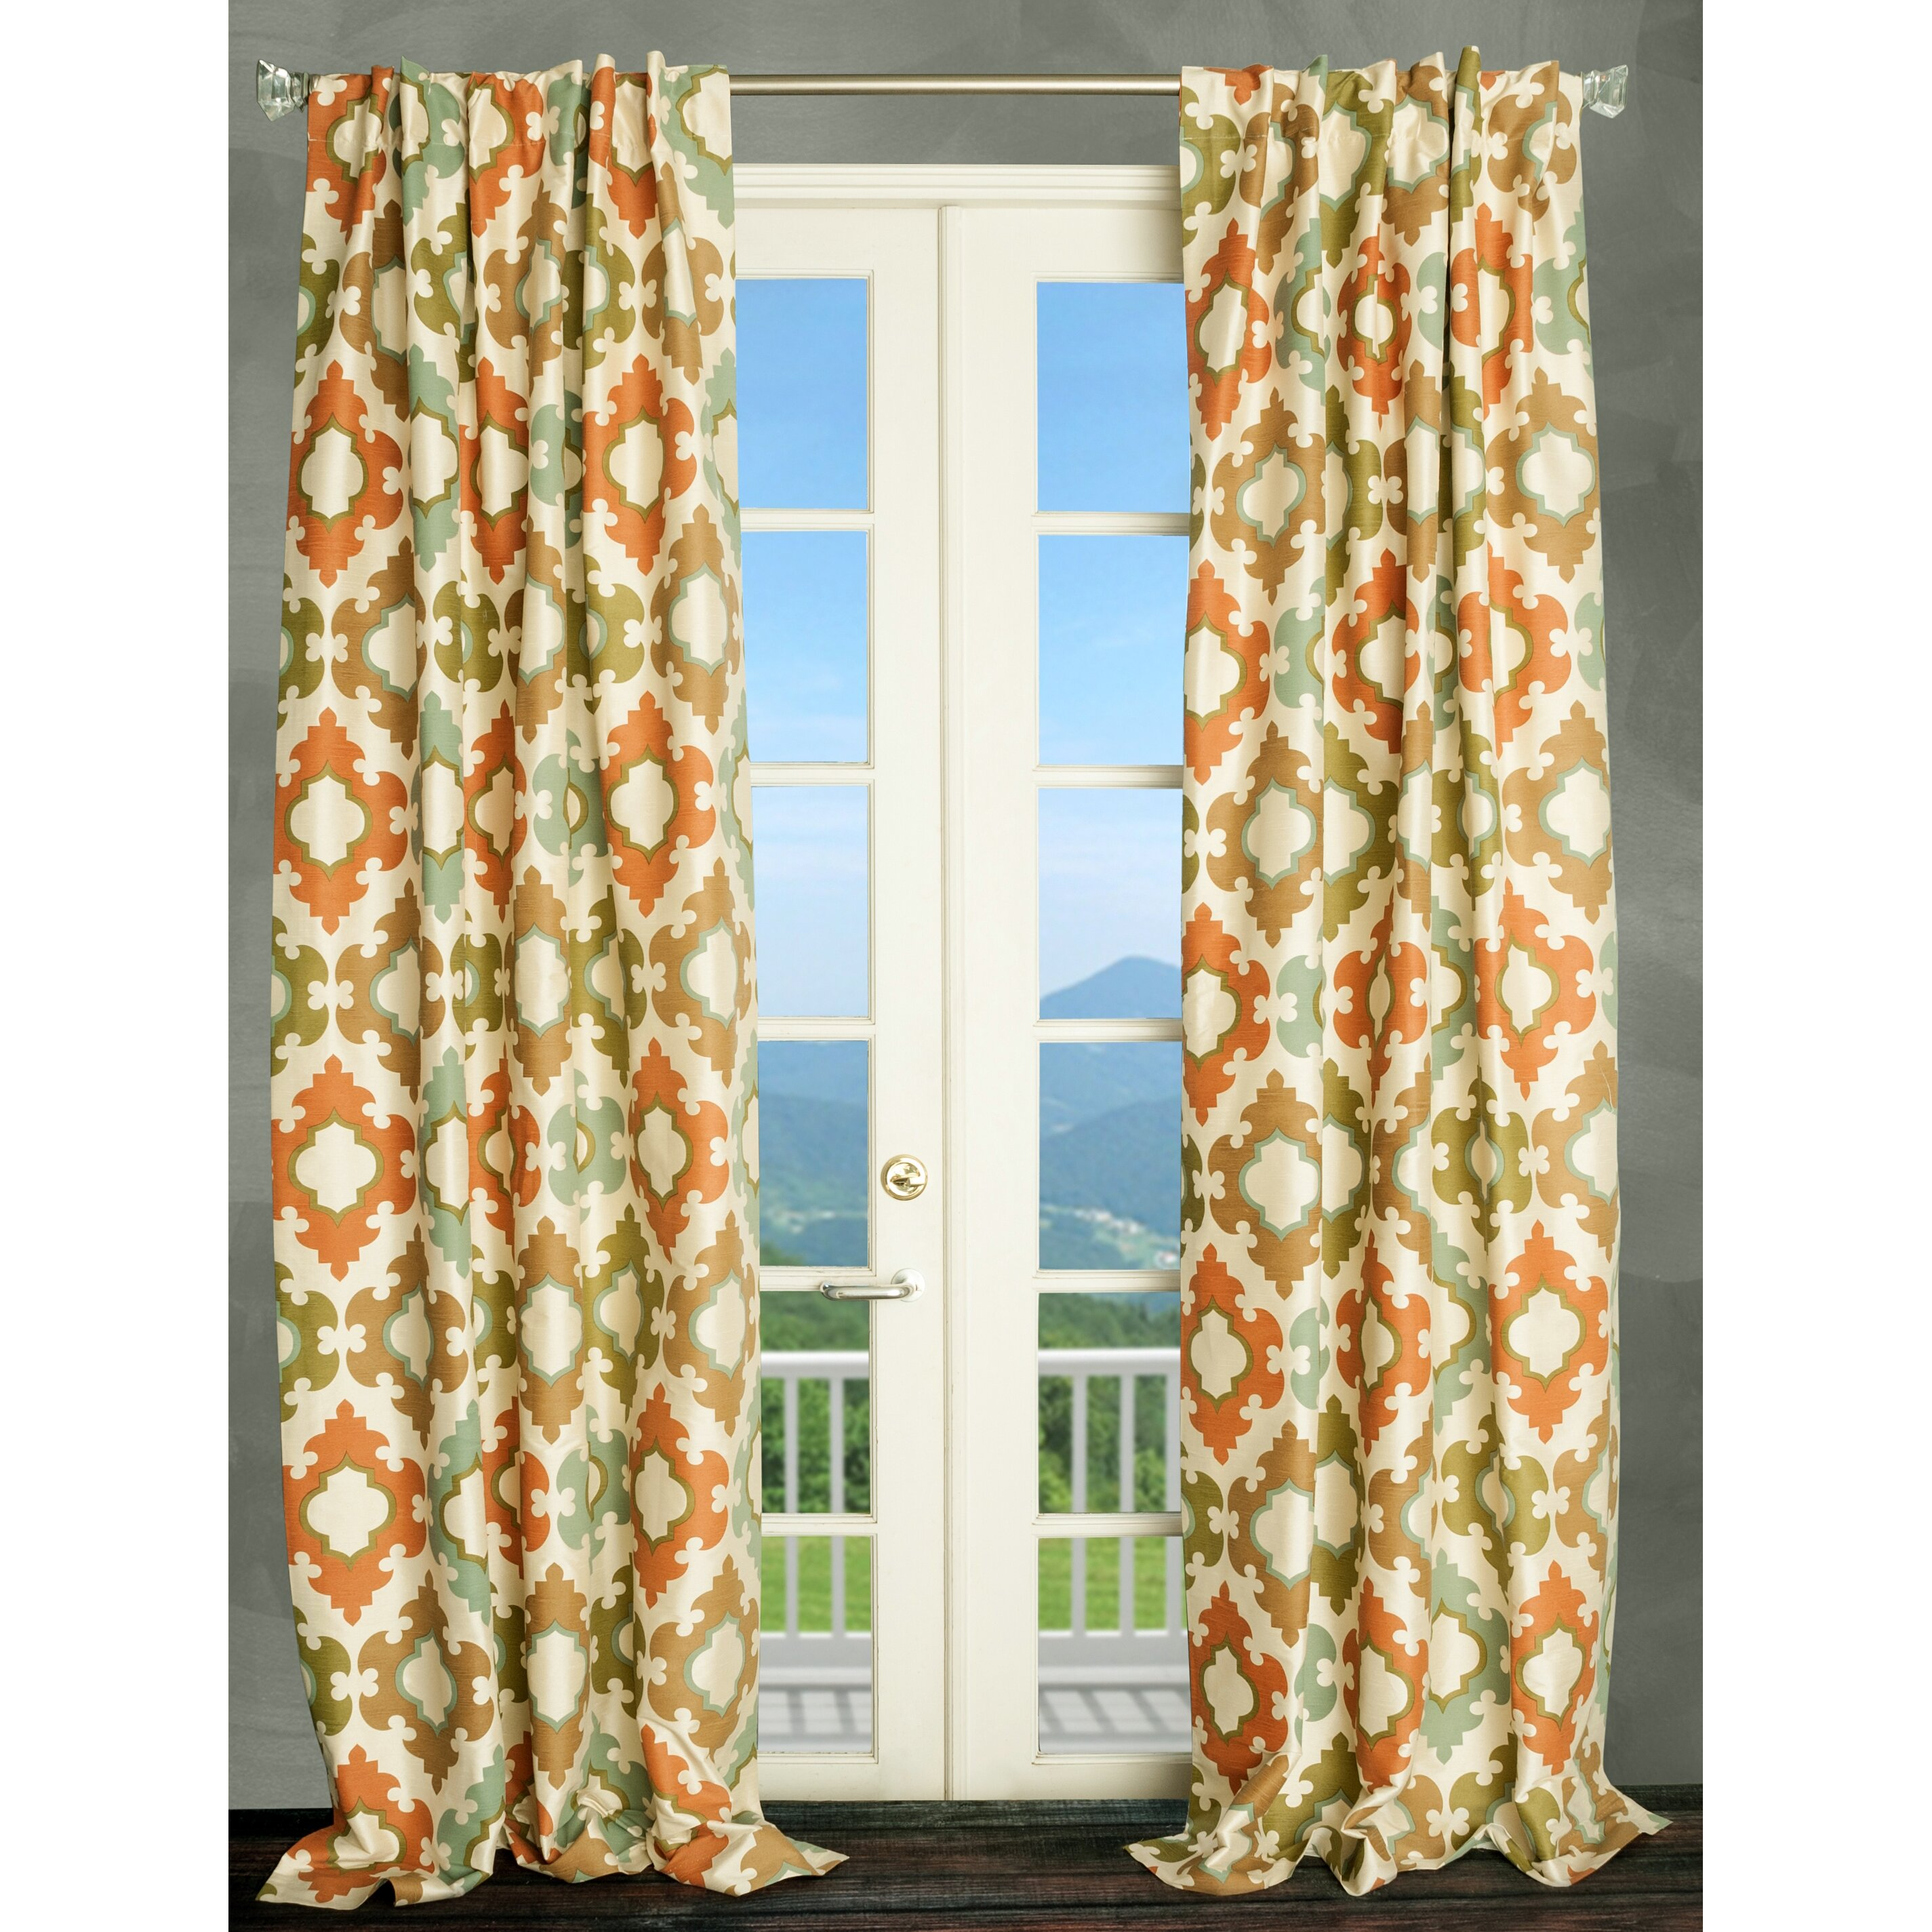 Parisian Home Style Damask Thermal Single Panel Curtain